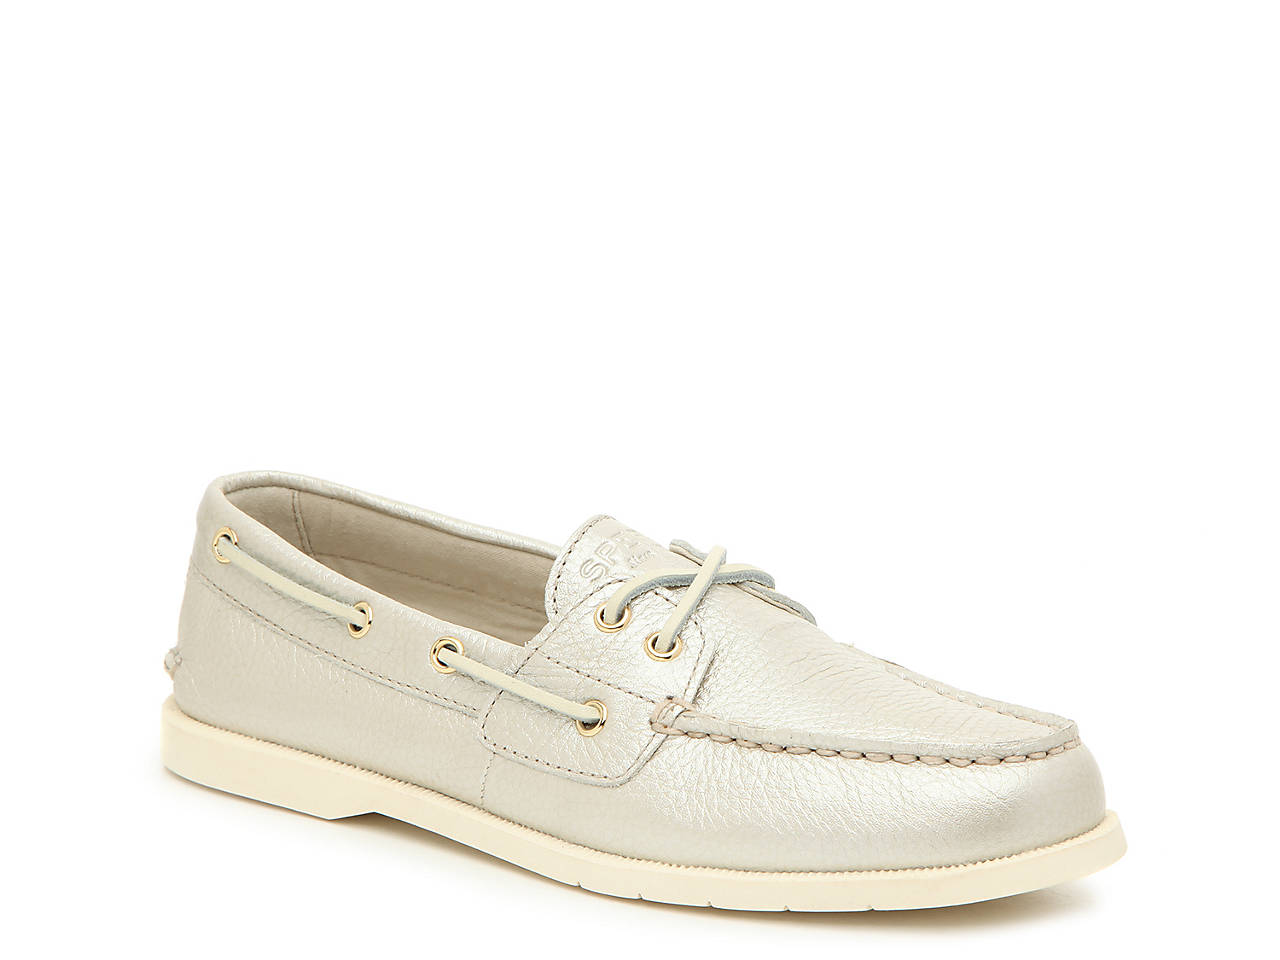 e3dbfcd08caa Sperry Top Sider Conway Boat Shoe Women S Shoes Dsw